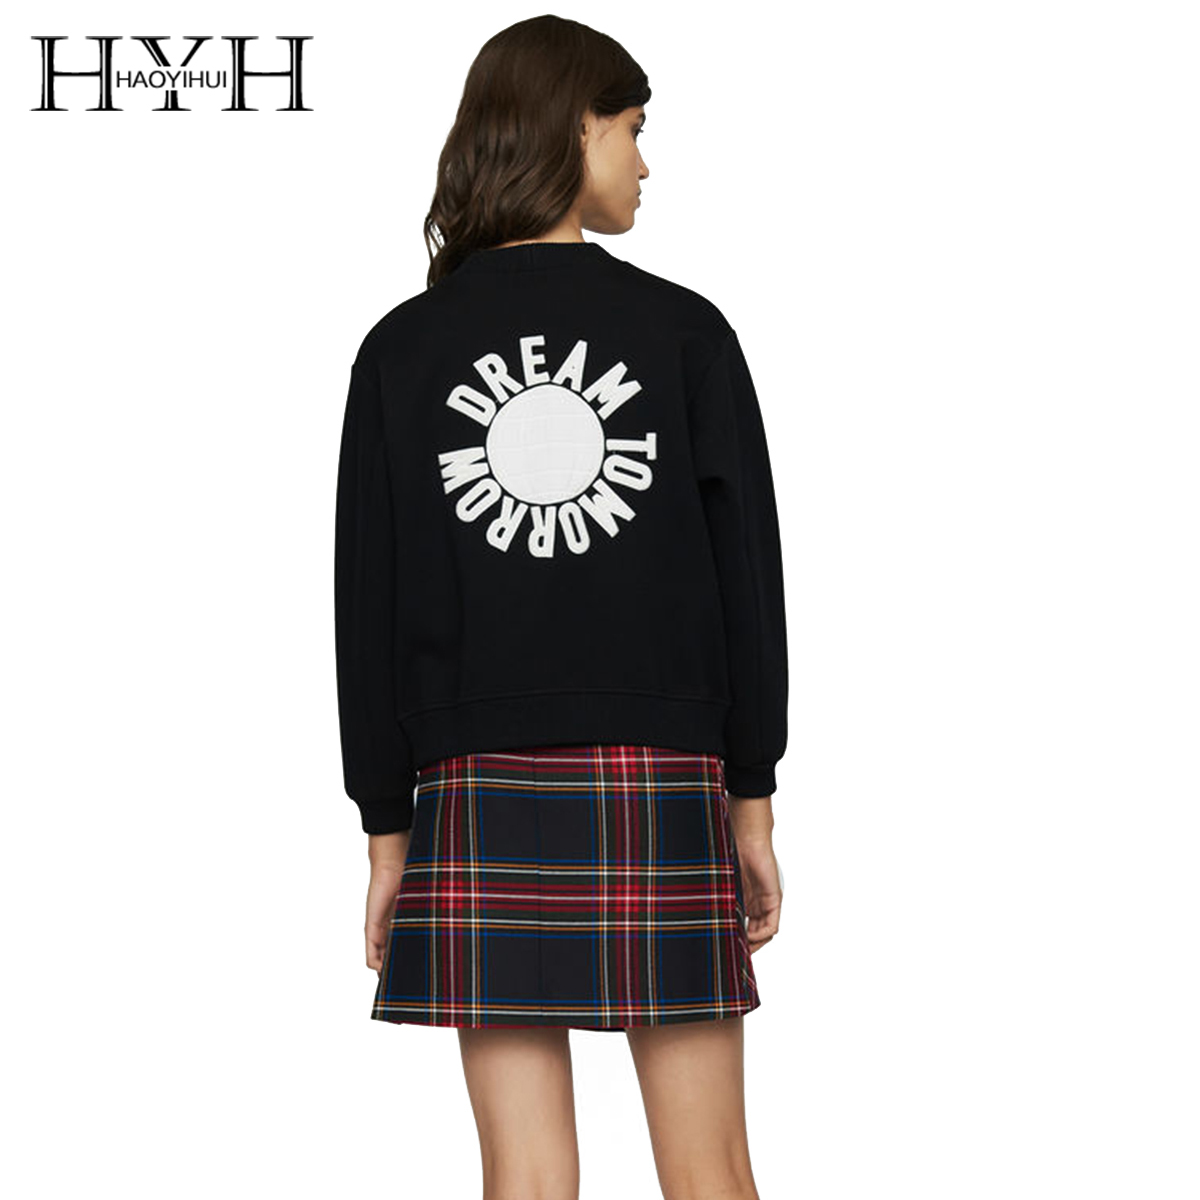 HYH HAOYIHUI Simple leisure basic style pure color button back embroidered round collar guard garment